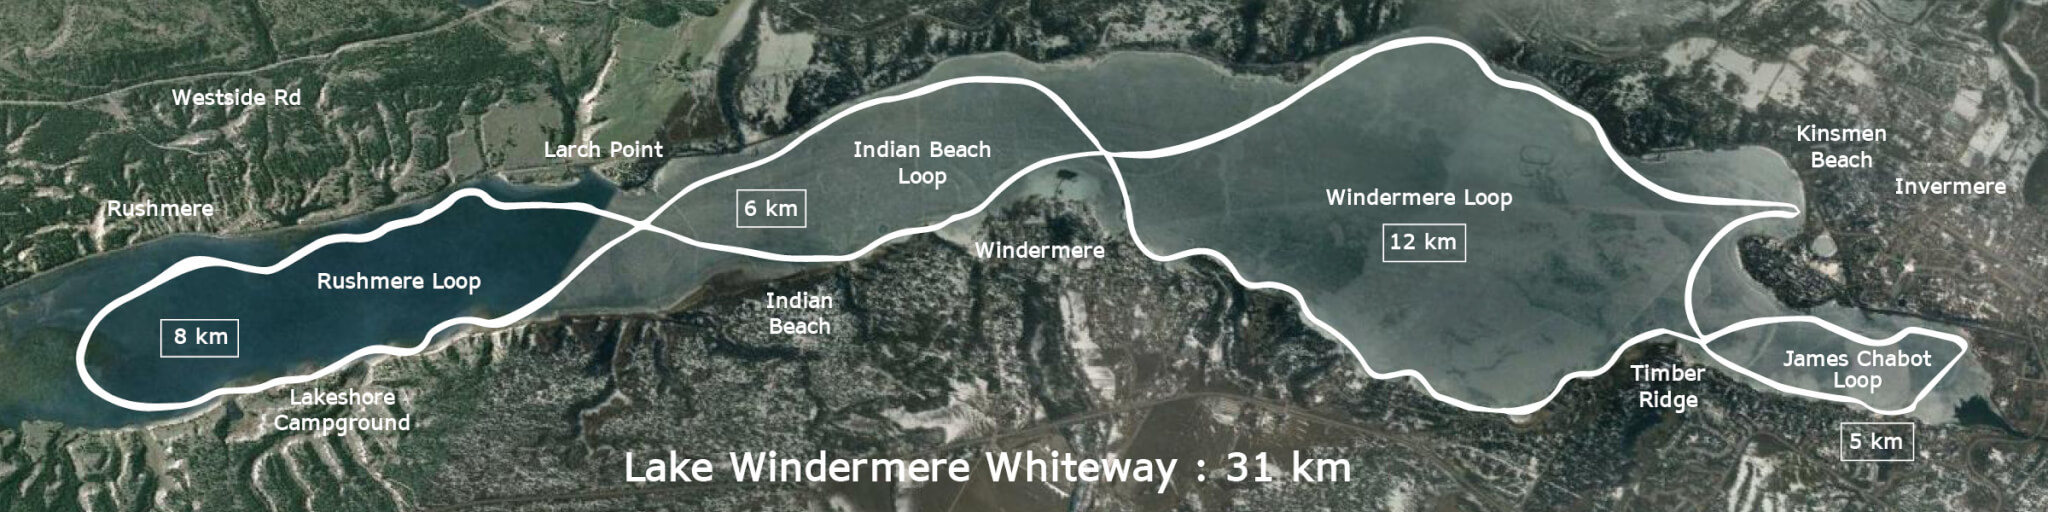 Lake Windermere Whiteway Map